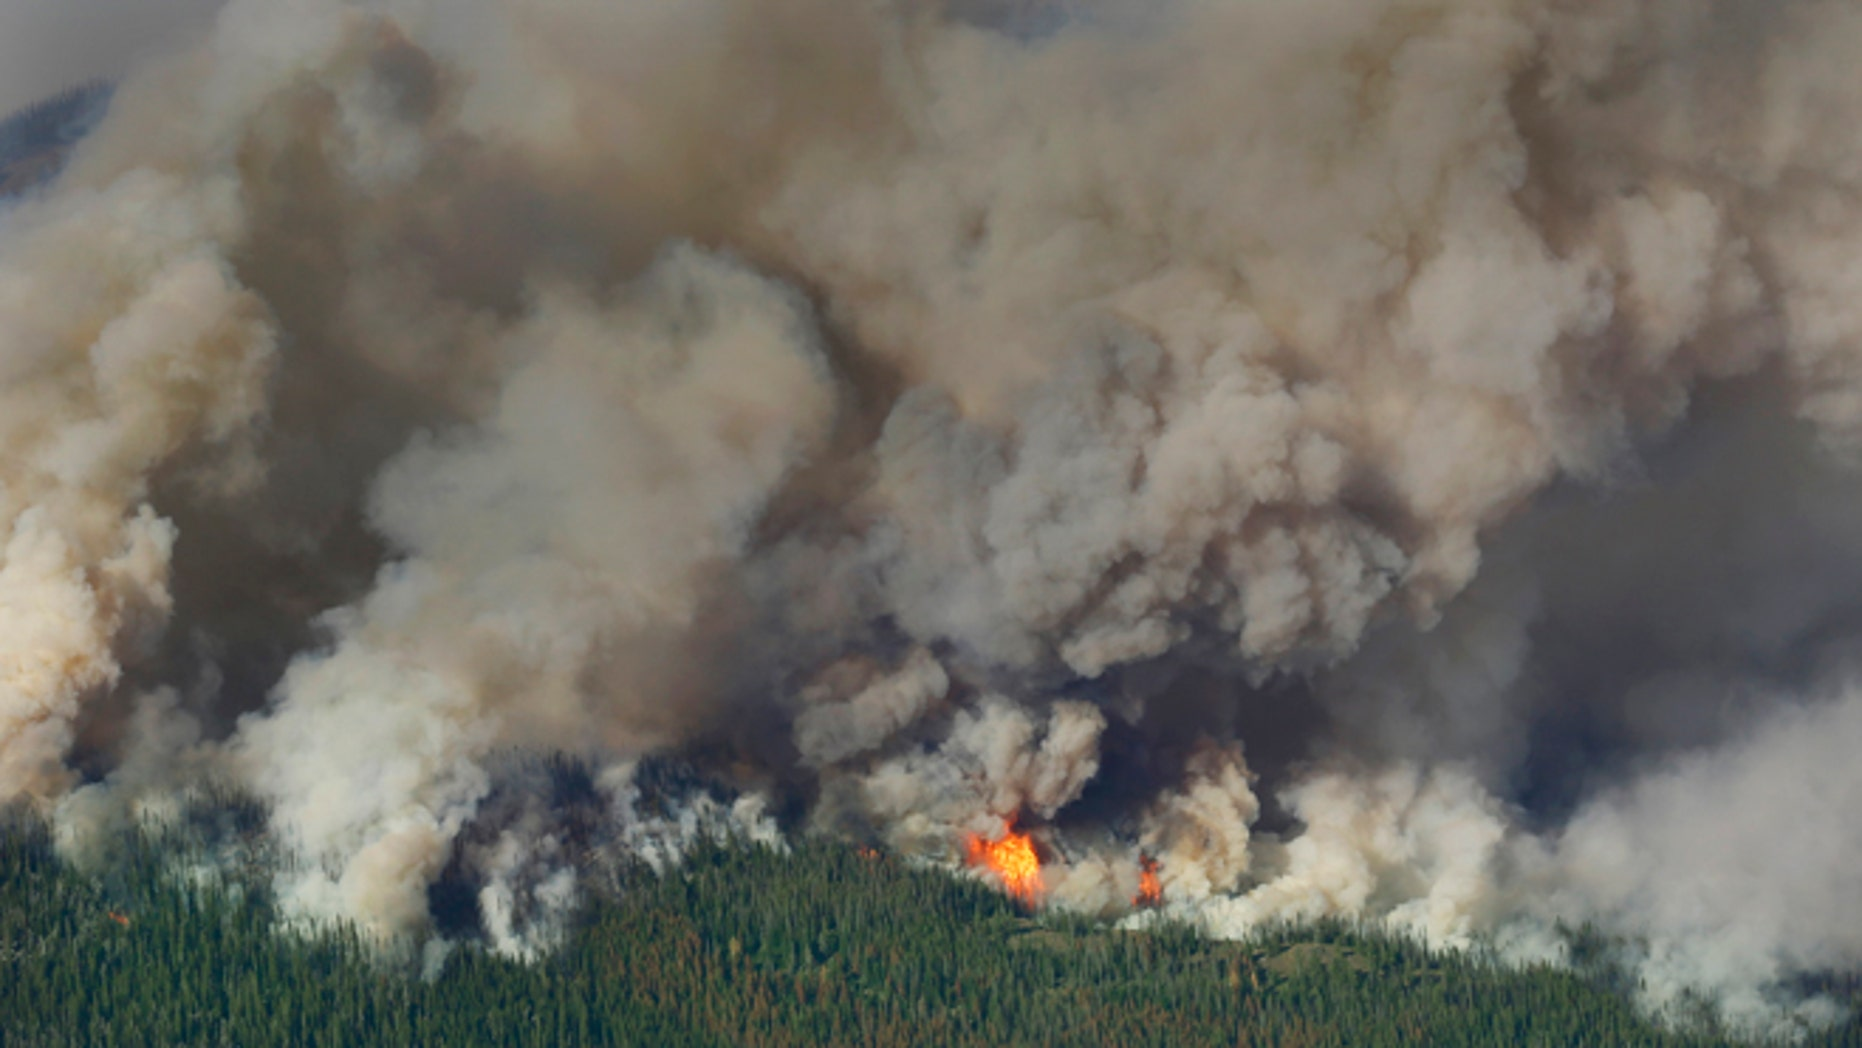 July 17, 2014: Smoke and flames rise from the Chiwaukum Creek Fire near Leavenworth, Wash.